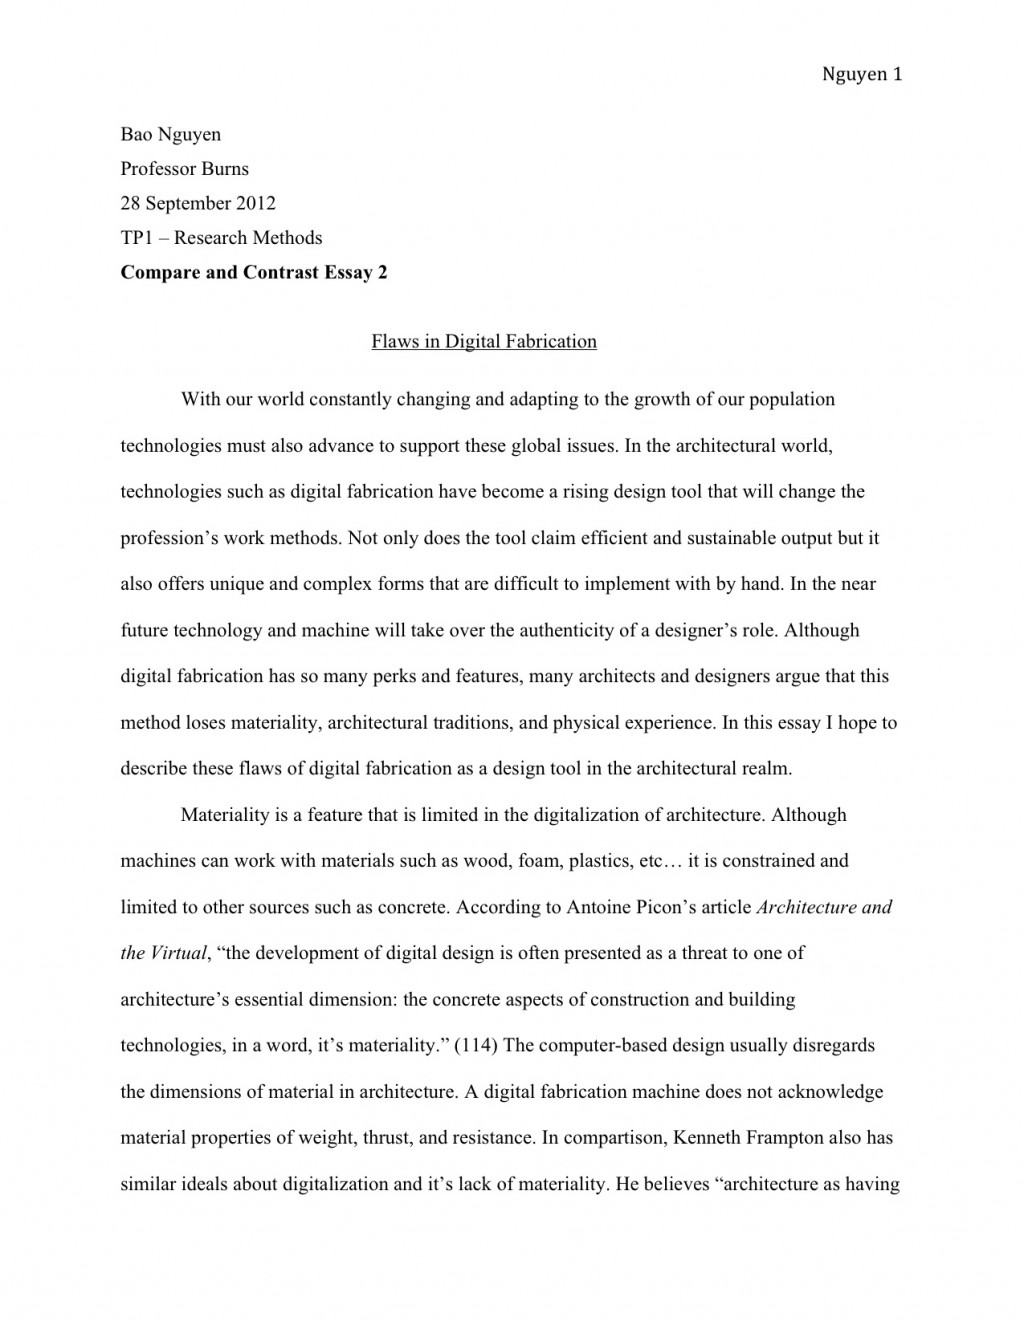 004 Essay Example How To Type An Tp1 3 Awesome Fast A One Page Paper In Apa Format Mla On Mac Large